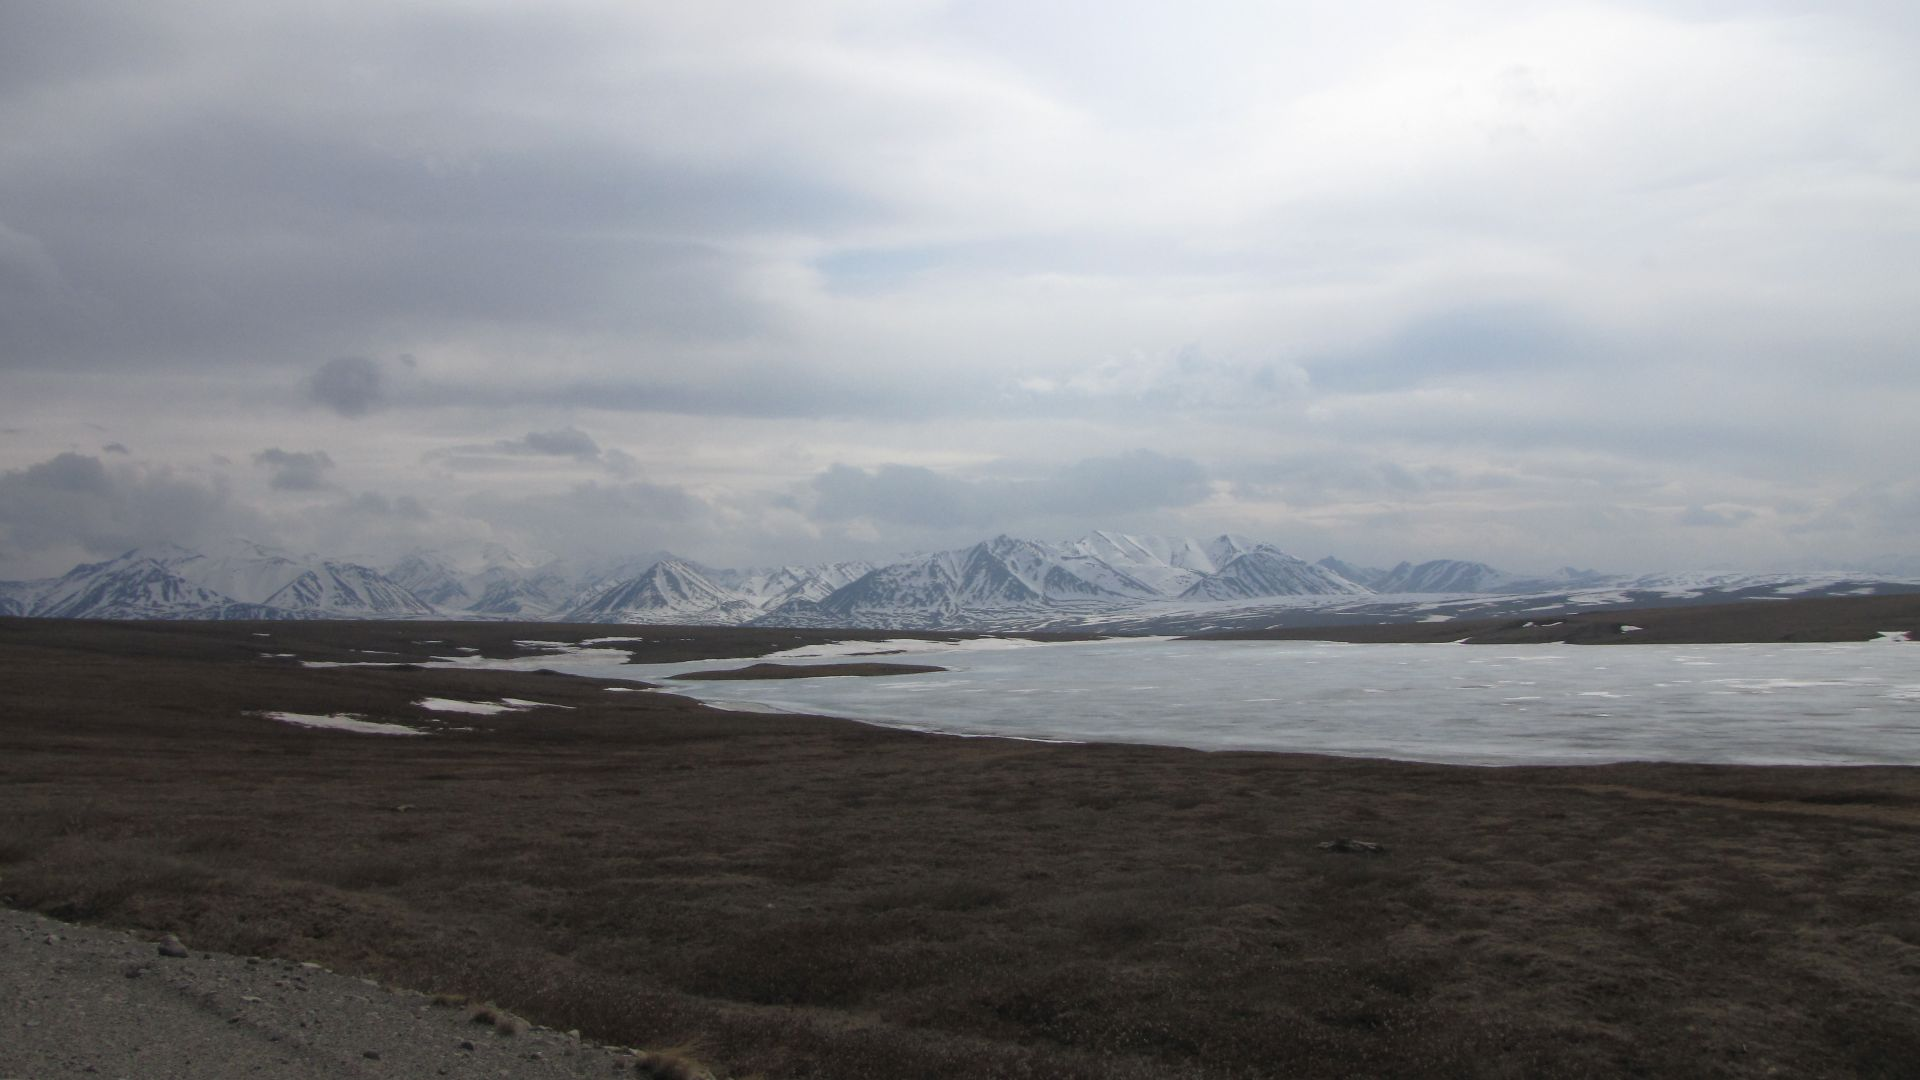 Lake at Toolik - no boating - UAF research camp nearby - thanks for the lovely breakfast guys!